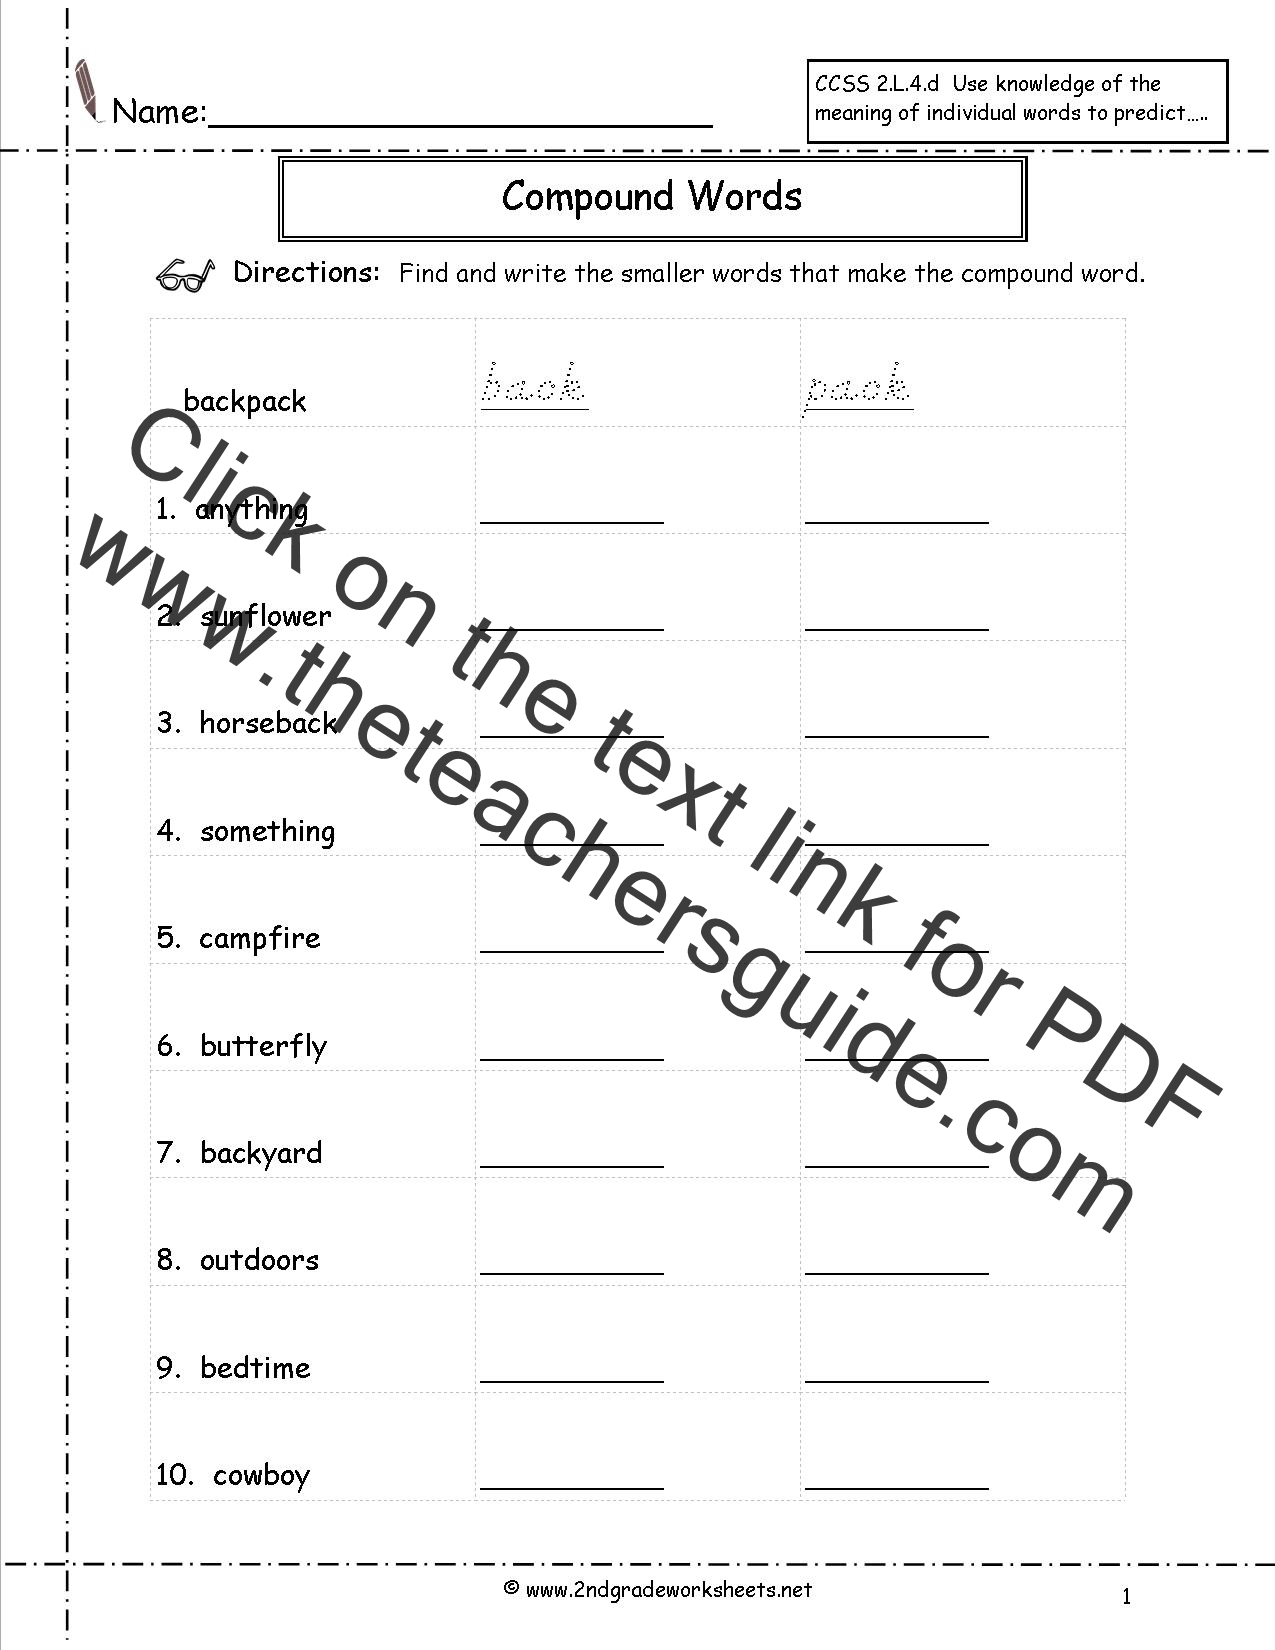 Free LanguageGrammar Worksheets and Printouts – Free Printable Second Grade Worksheets